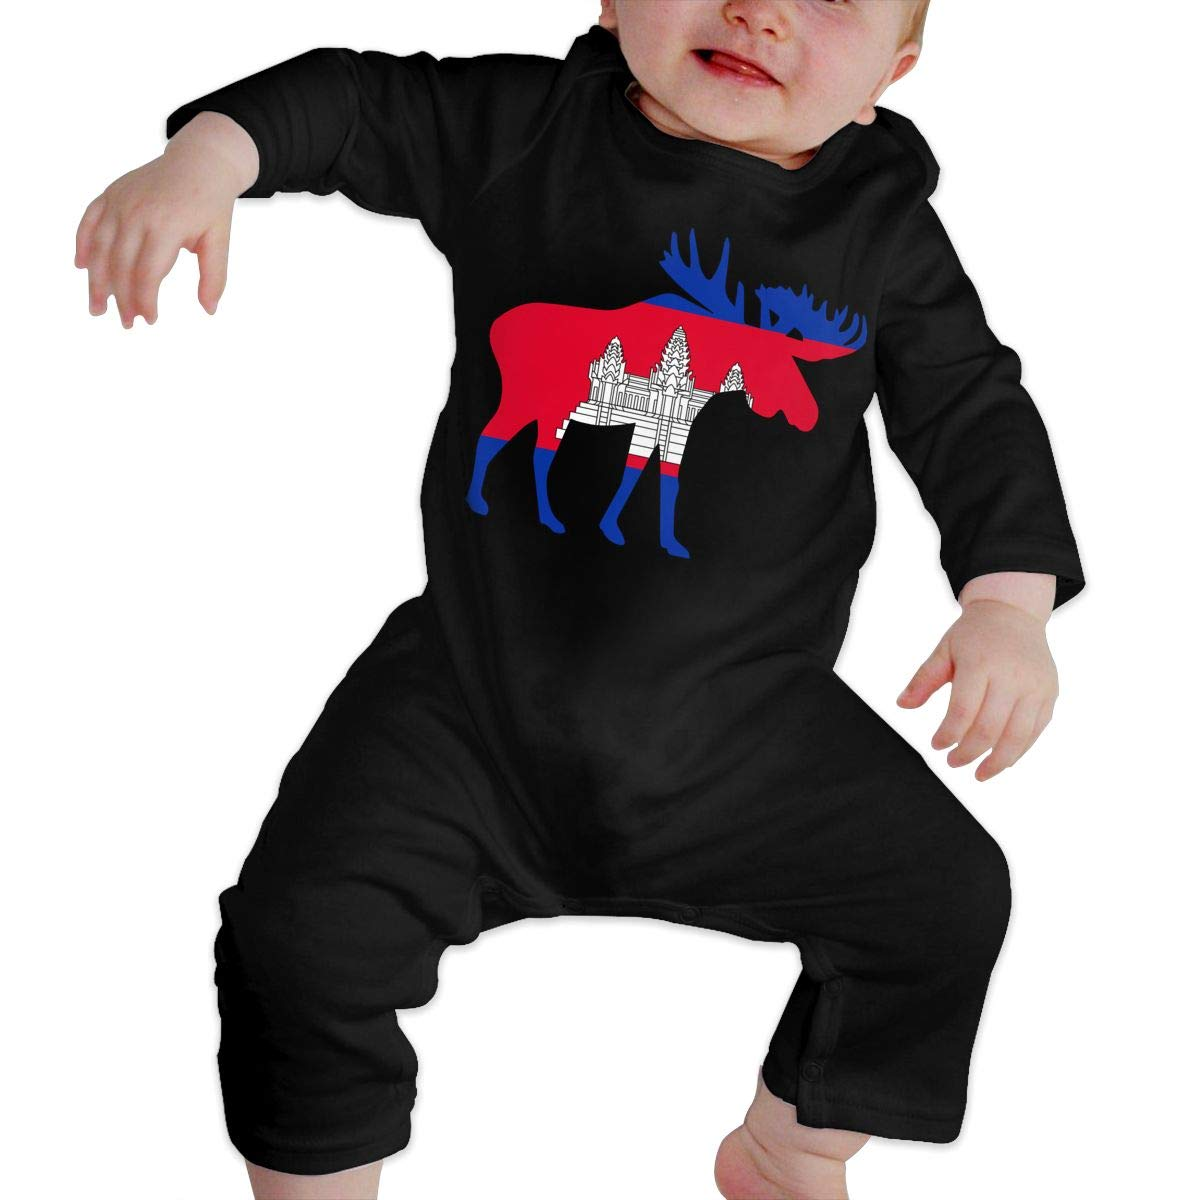 U99oi-9 Long Sleeve Cotton Rompers for Baby Boys and Girls Fashion Cambodia Moose Crawler